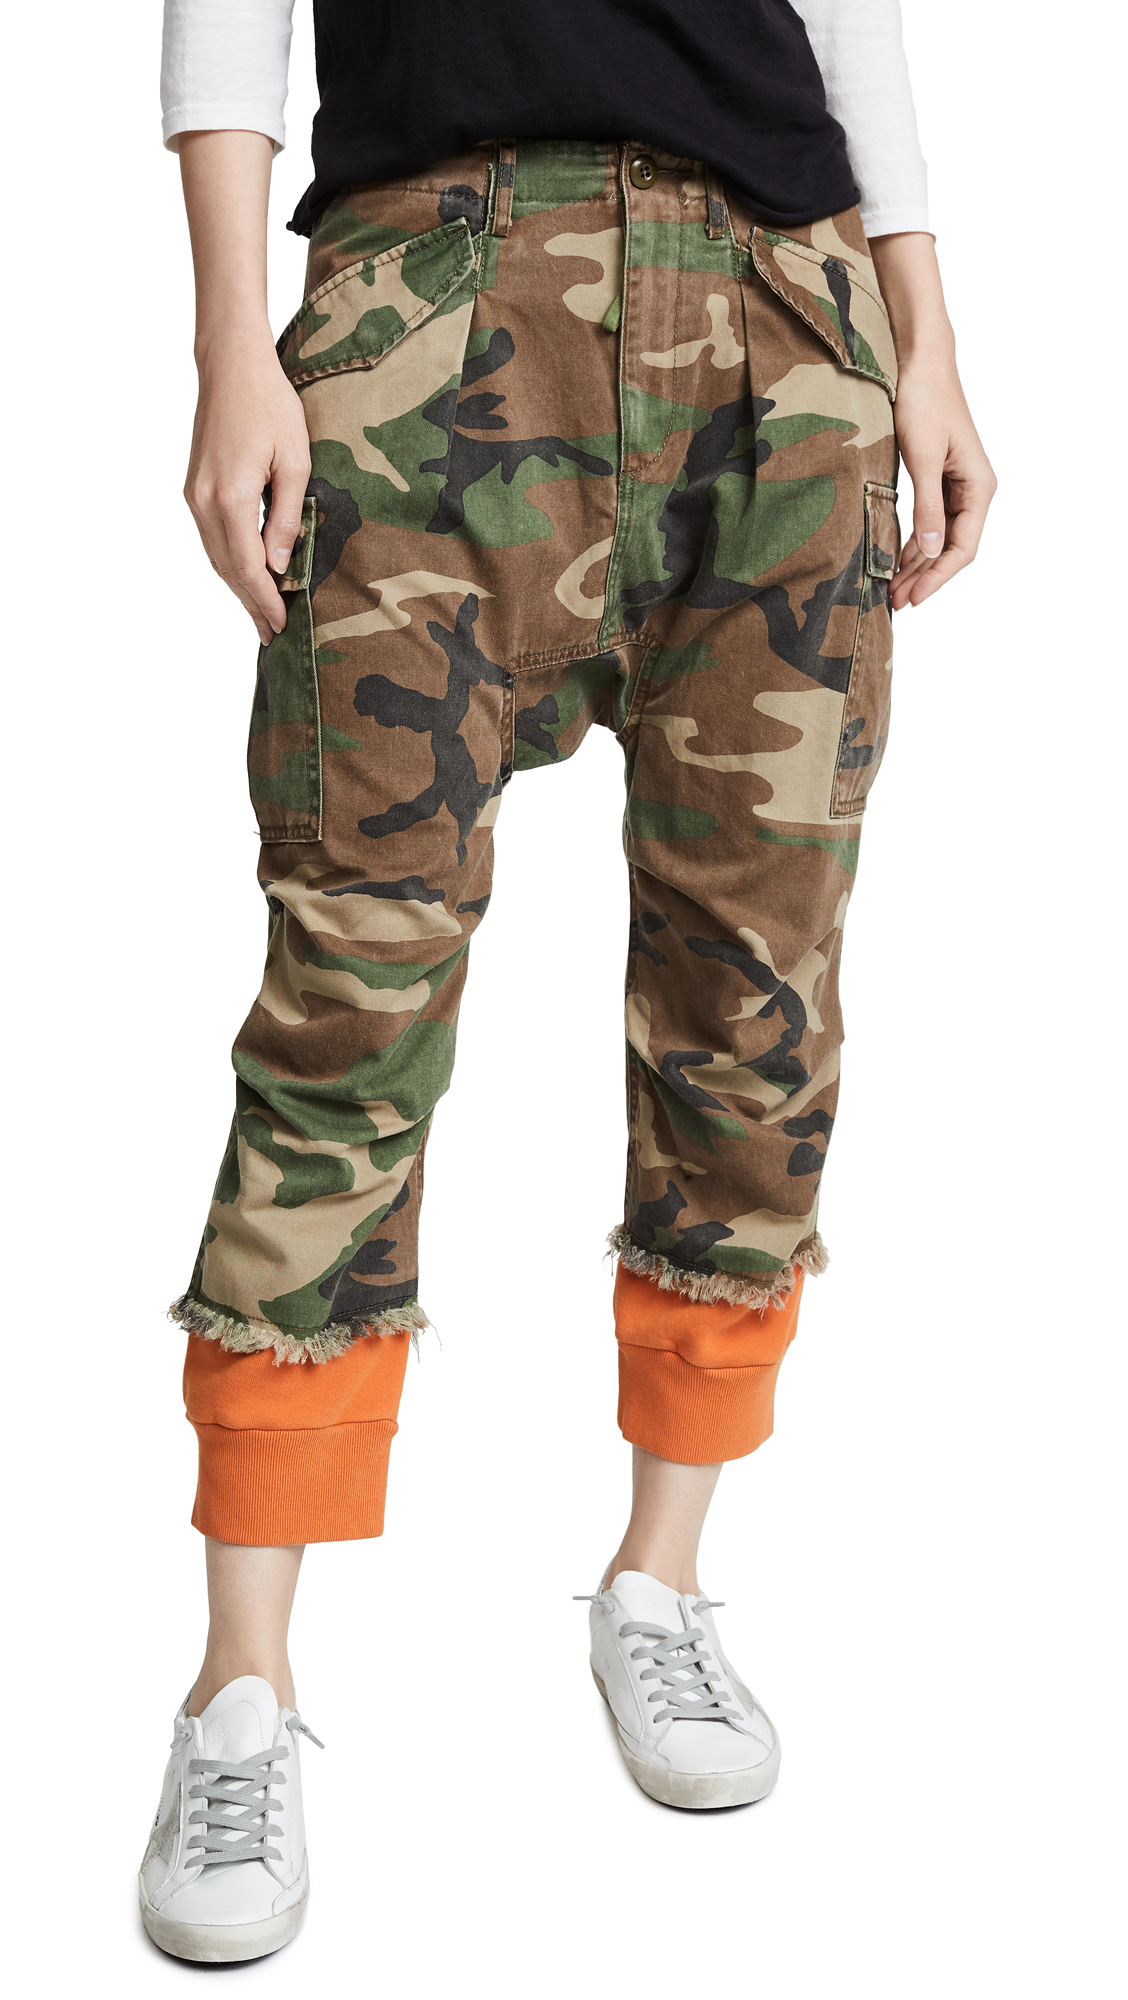 Green & Orange Camo Harrem Sweat Cuffs Cargo Trousers, Camo/Orange